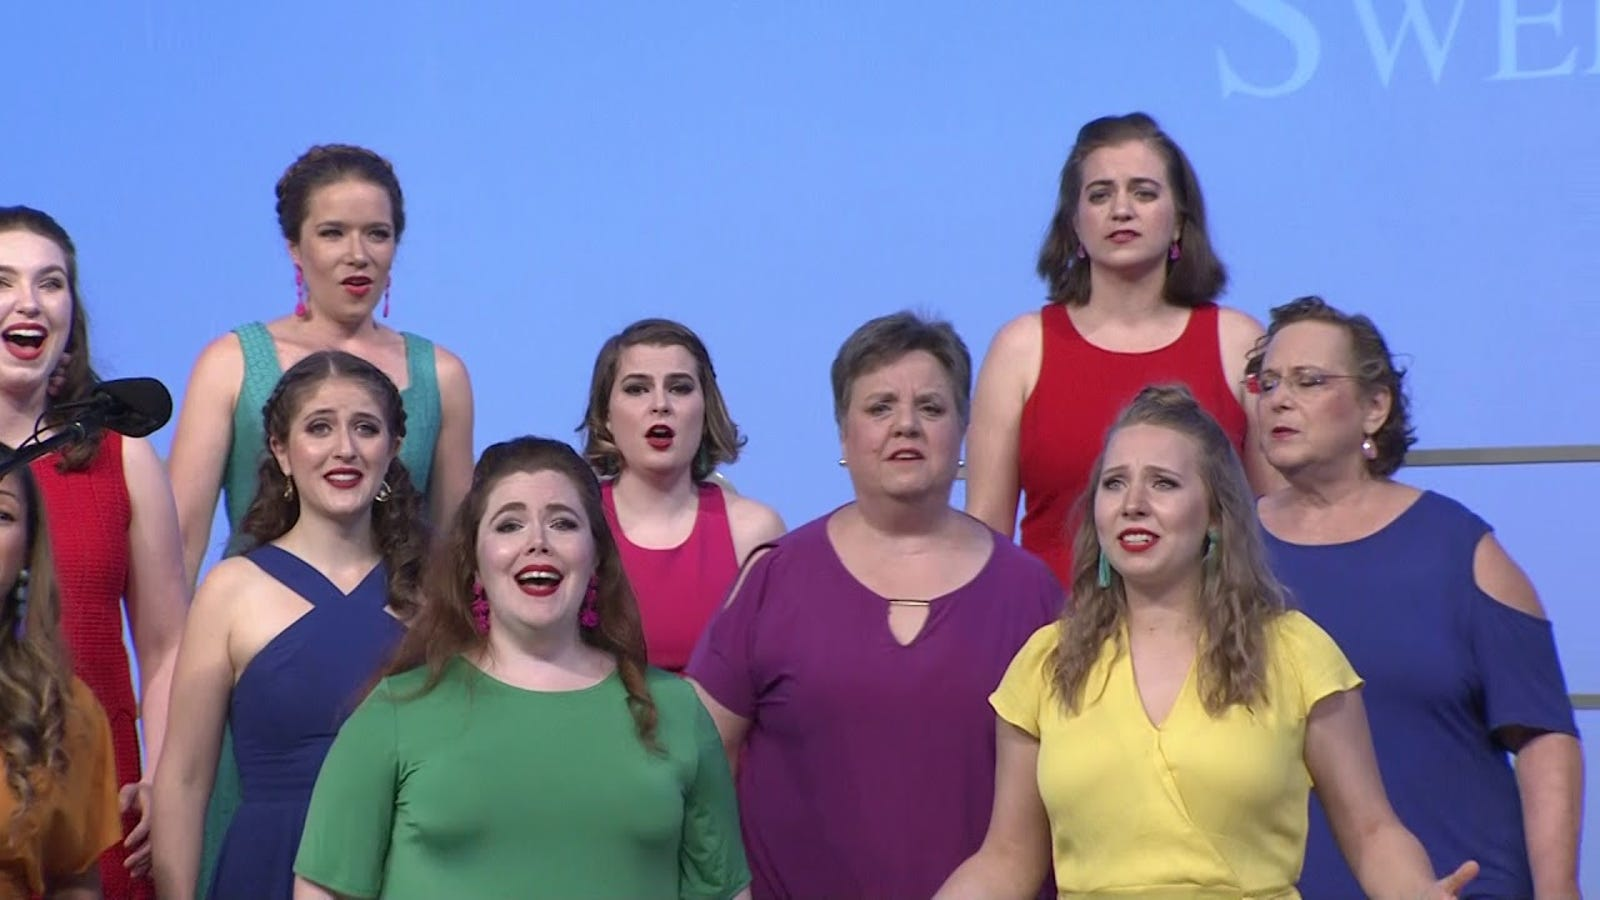 QnA VBage How to Sing in a Choir, According to a Champion A Cappella Group